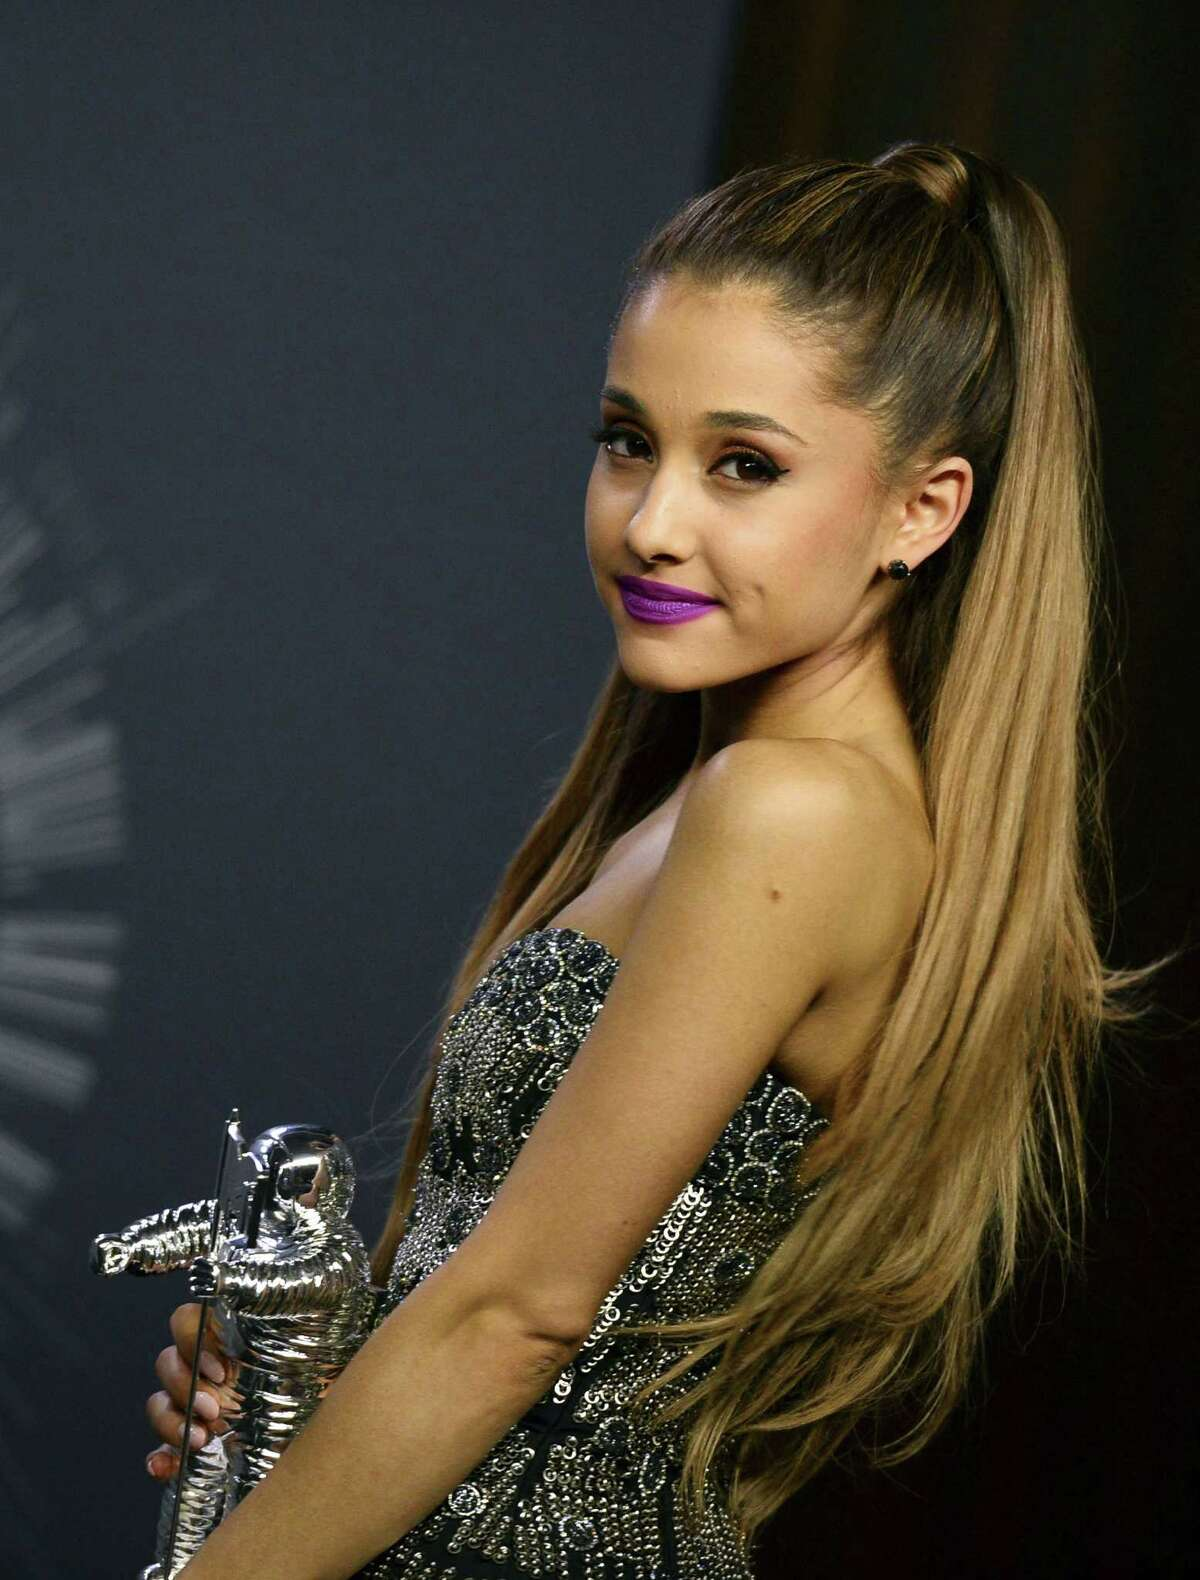 FILE - In this Aug. 24, 2014 file photo, Ariana Grande poses with her award for Best Pop Video in the press room at the MTV Video Music Awards in Inglewood, Calif. Grande has apologized for licking doughnuts and speaking harsh words about America for a second time in a new video. The singer said in the clip posted late Thursday, July 9, 2015, that sheís ìdisgusted with myself.î She added that she didnít clearly convey her true feelings in her first apology _ a written statement where she ranted about obesity in America. (Photo by Jordan Strauss/Invision/AP, File)